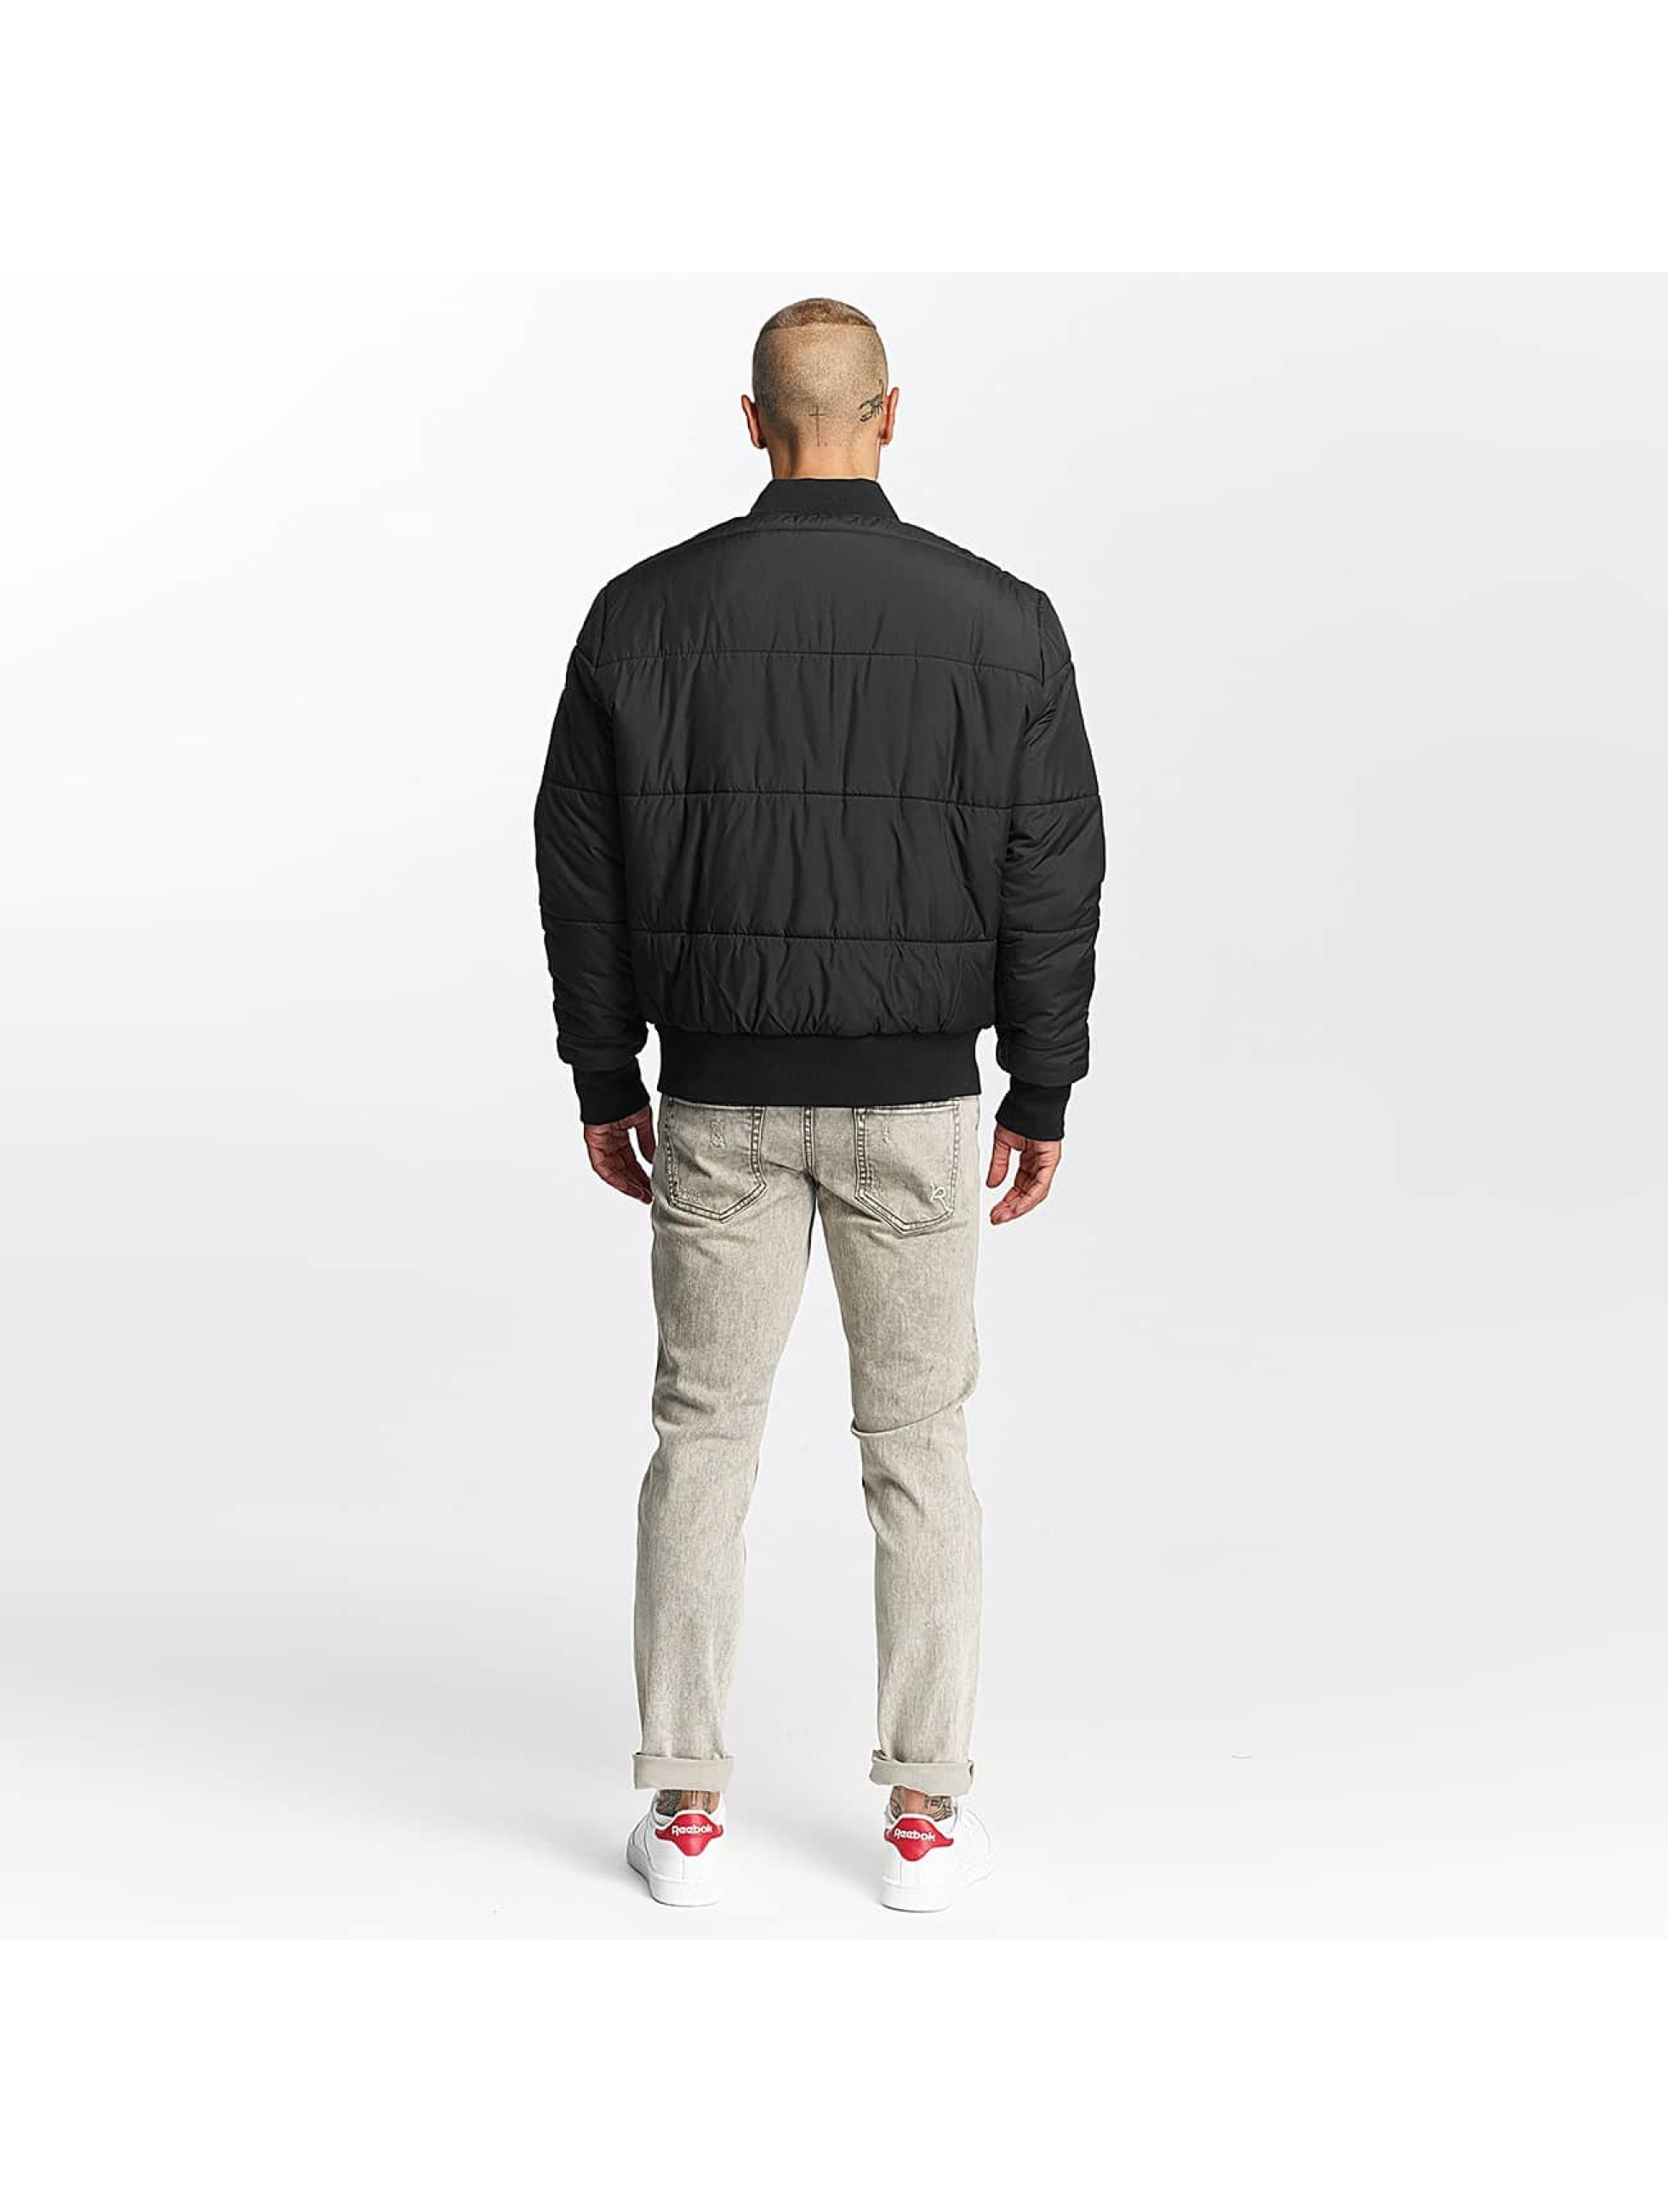 Pusher Apparel Giubbotto Bomber Quilted Bomber nero